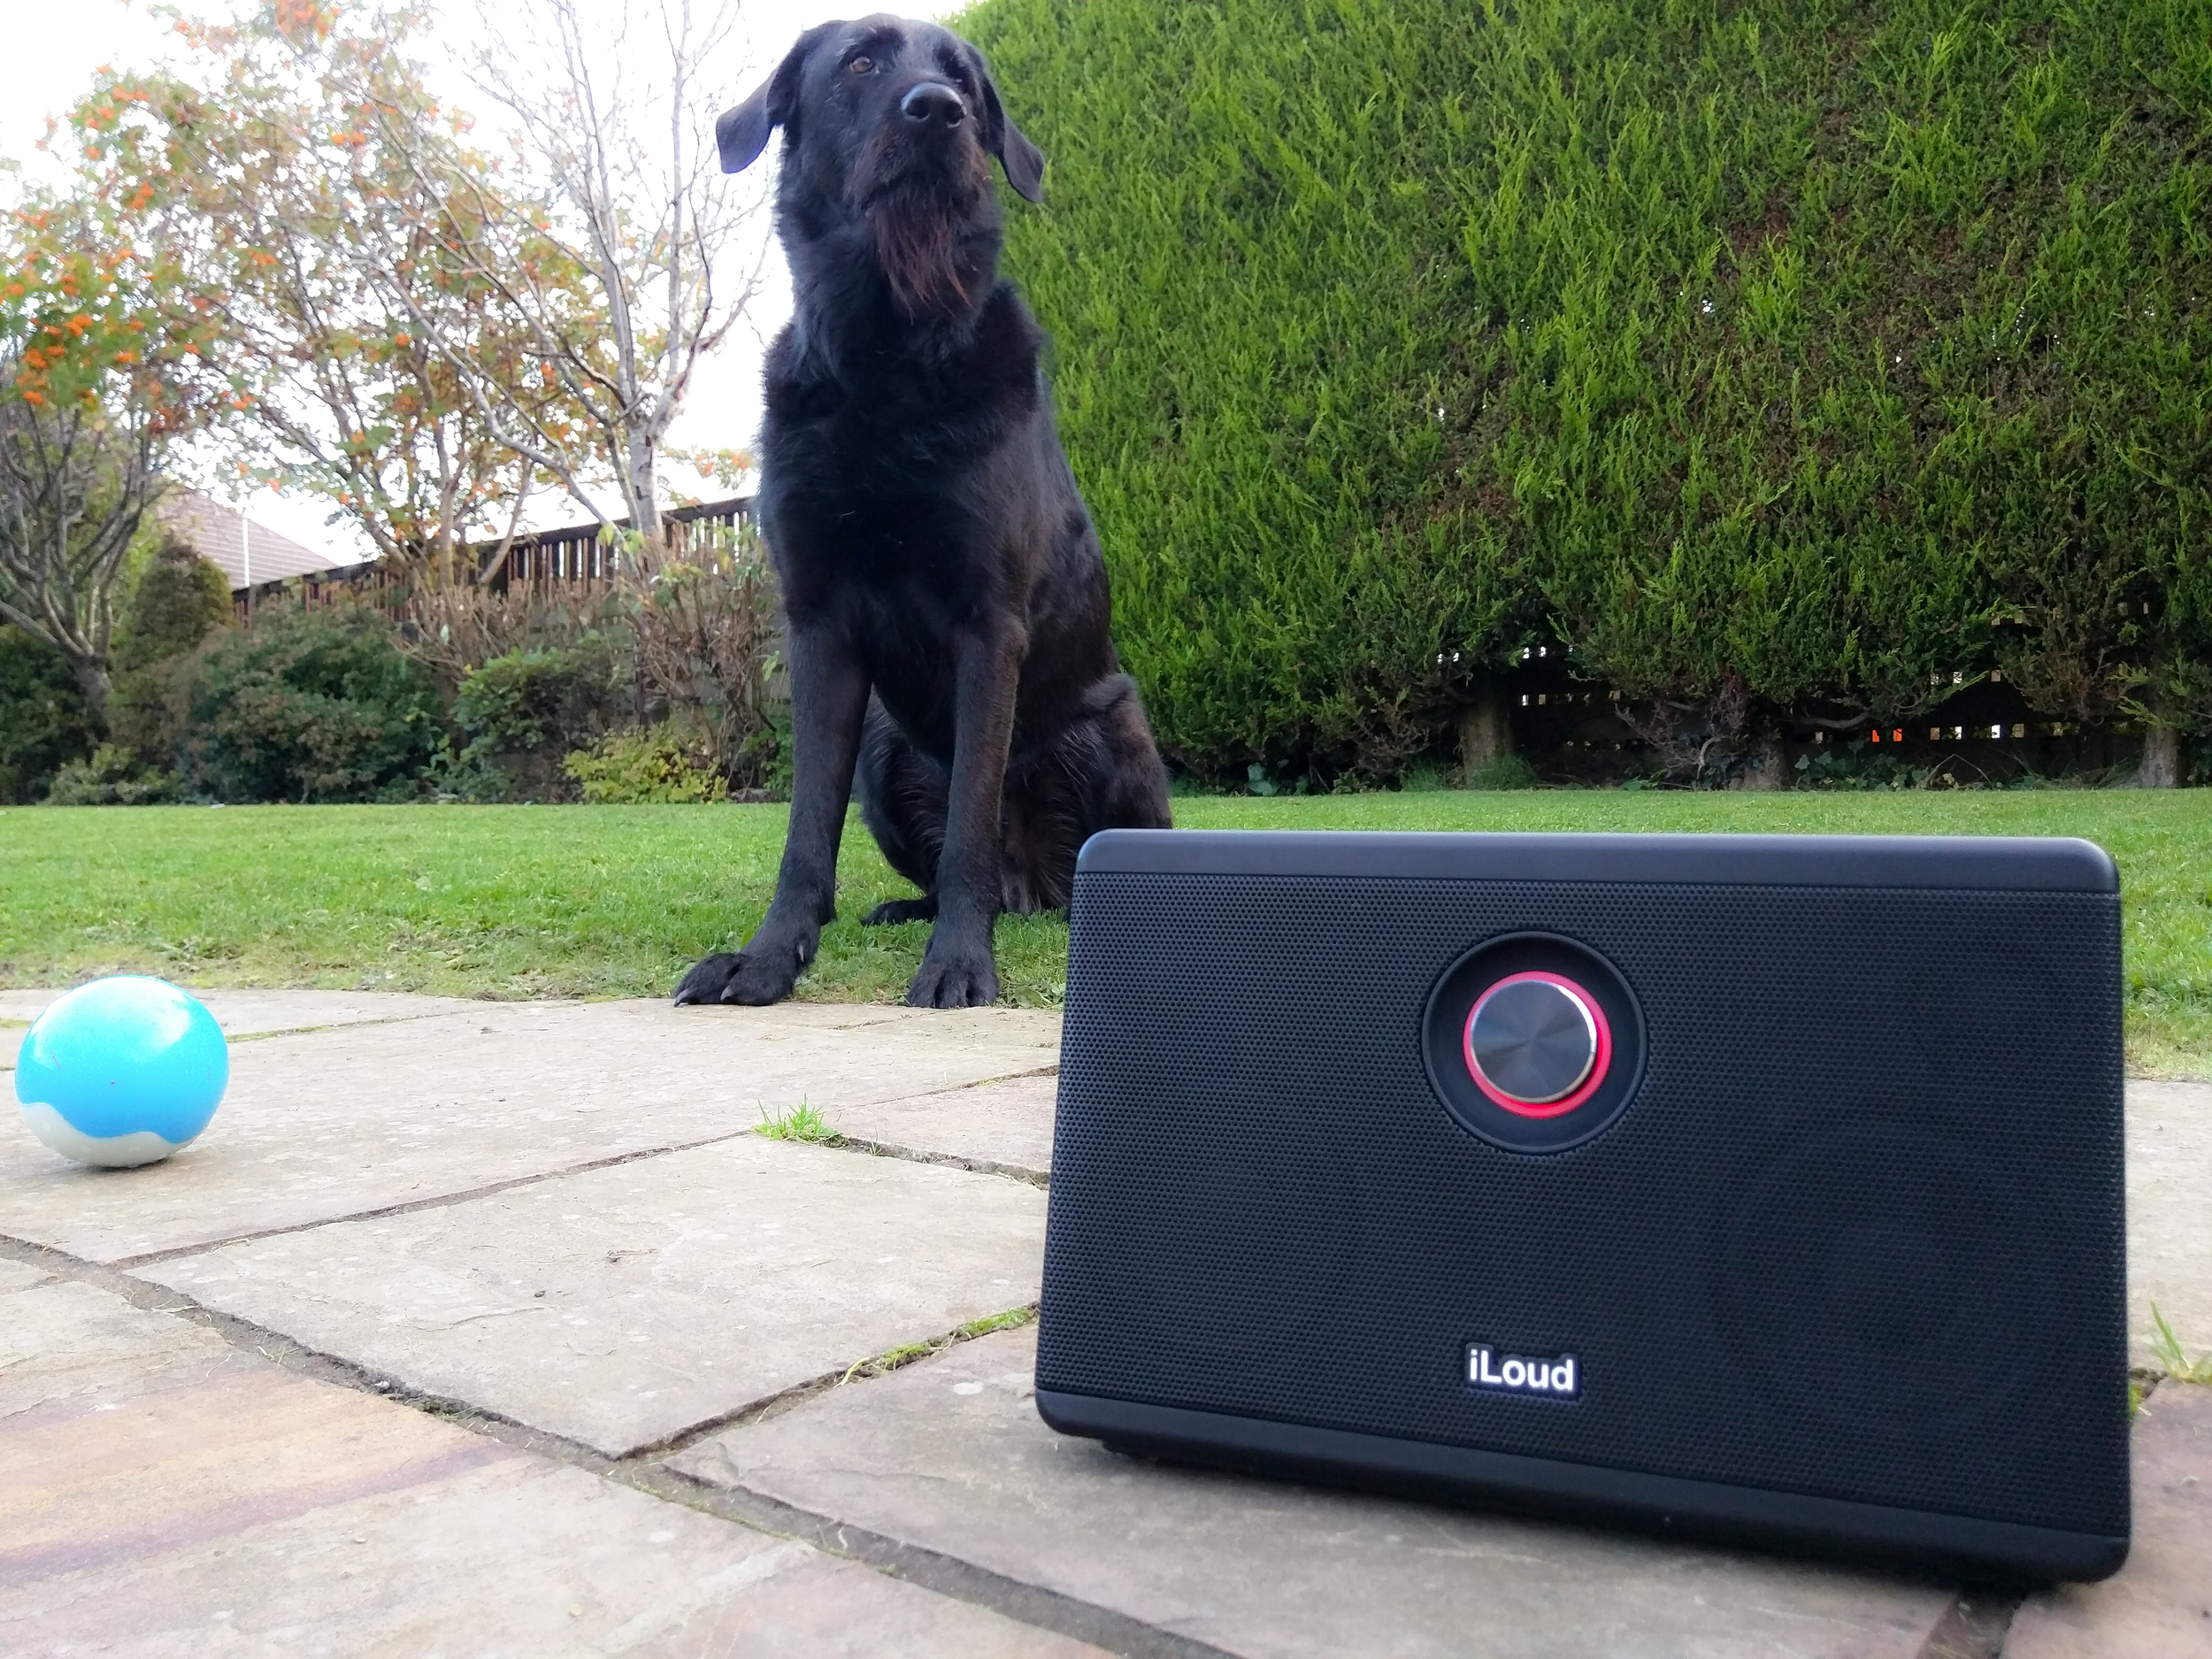 Iloud speaker review - Finnaly a bluetooth speaker loud enough to be used outdoors